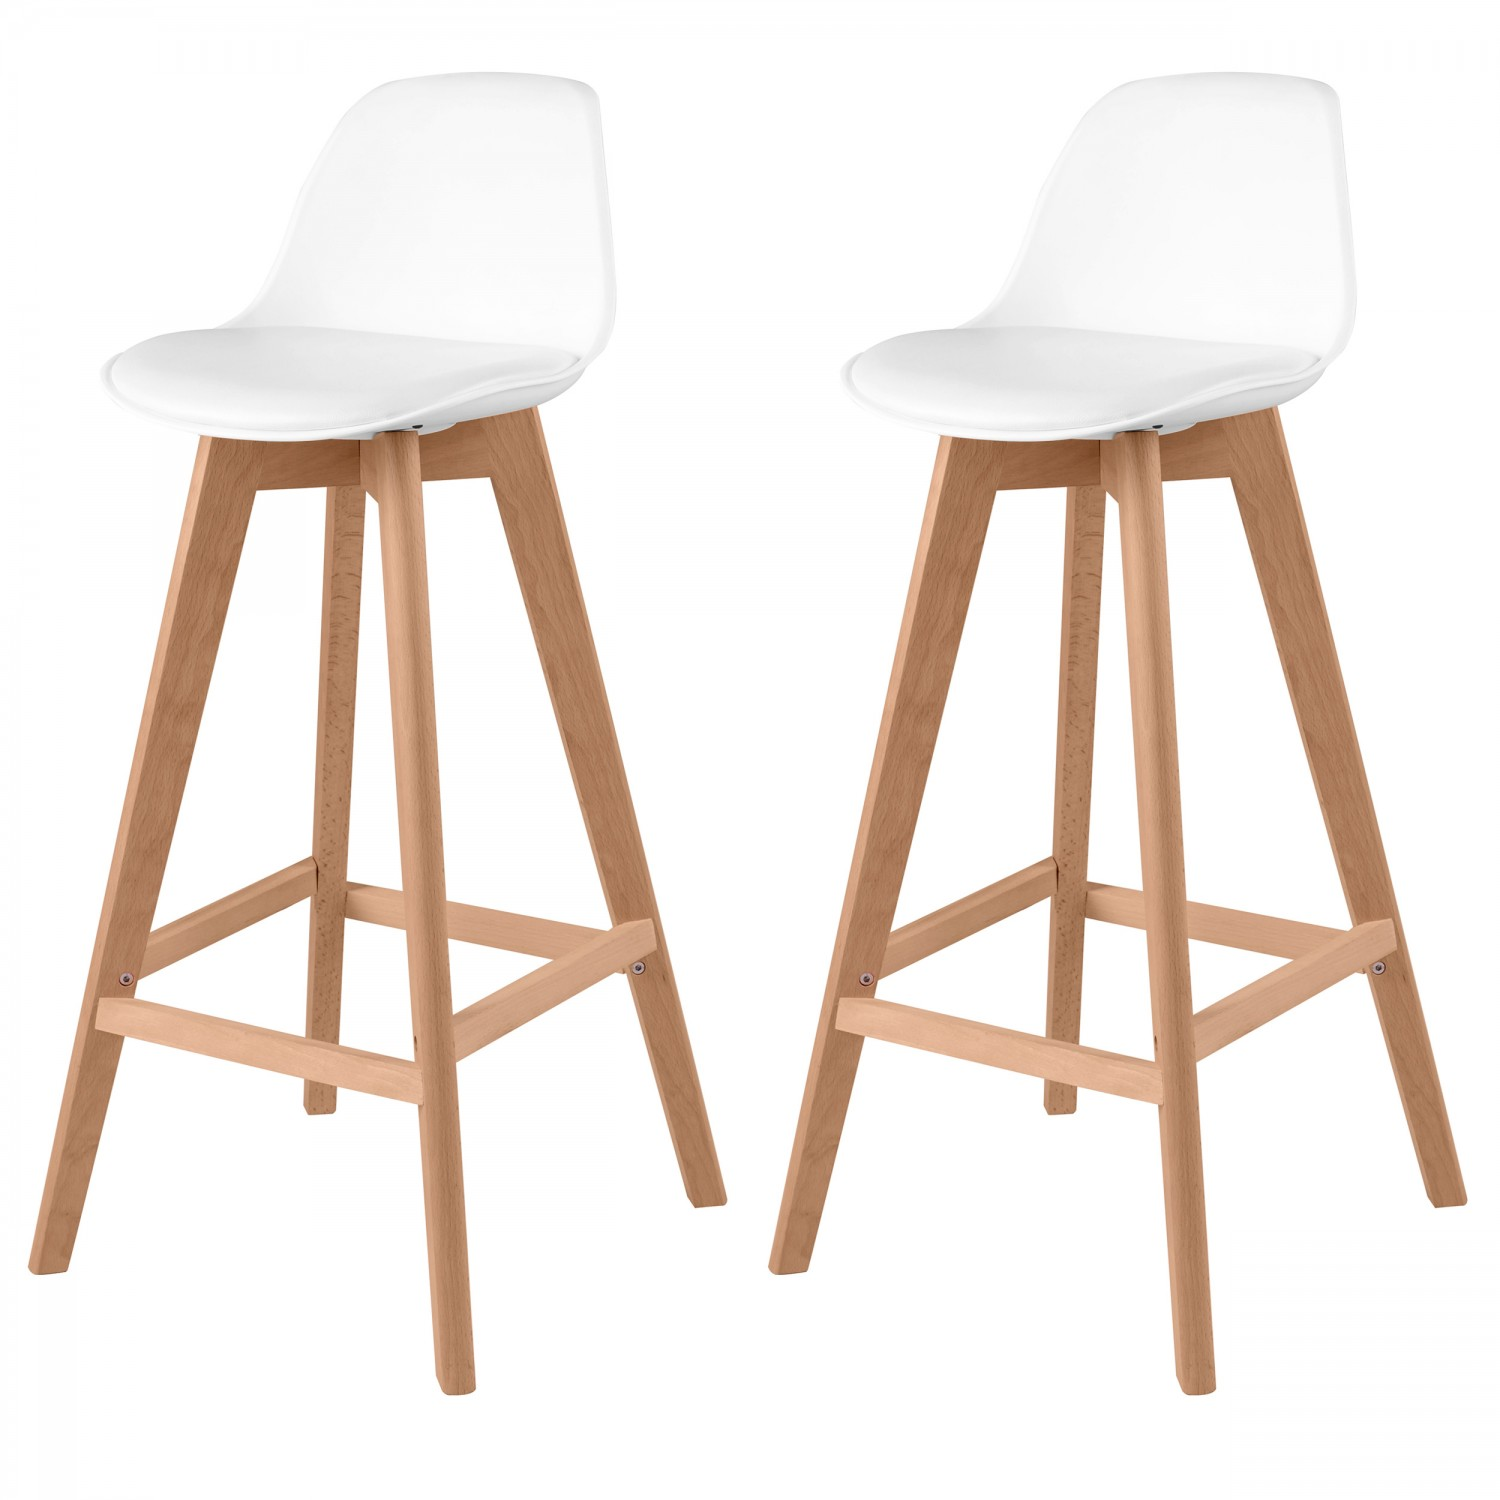 Tabouret De Bar Scandinave Blanc Lot De 2 Koya Design